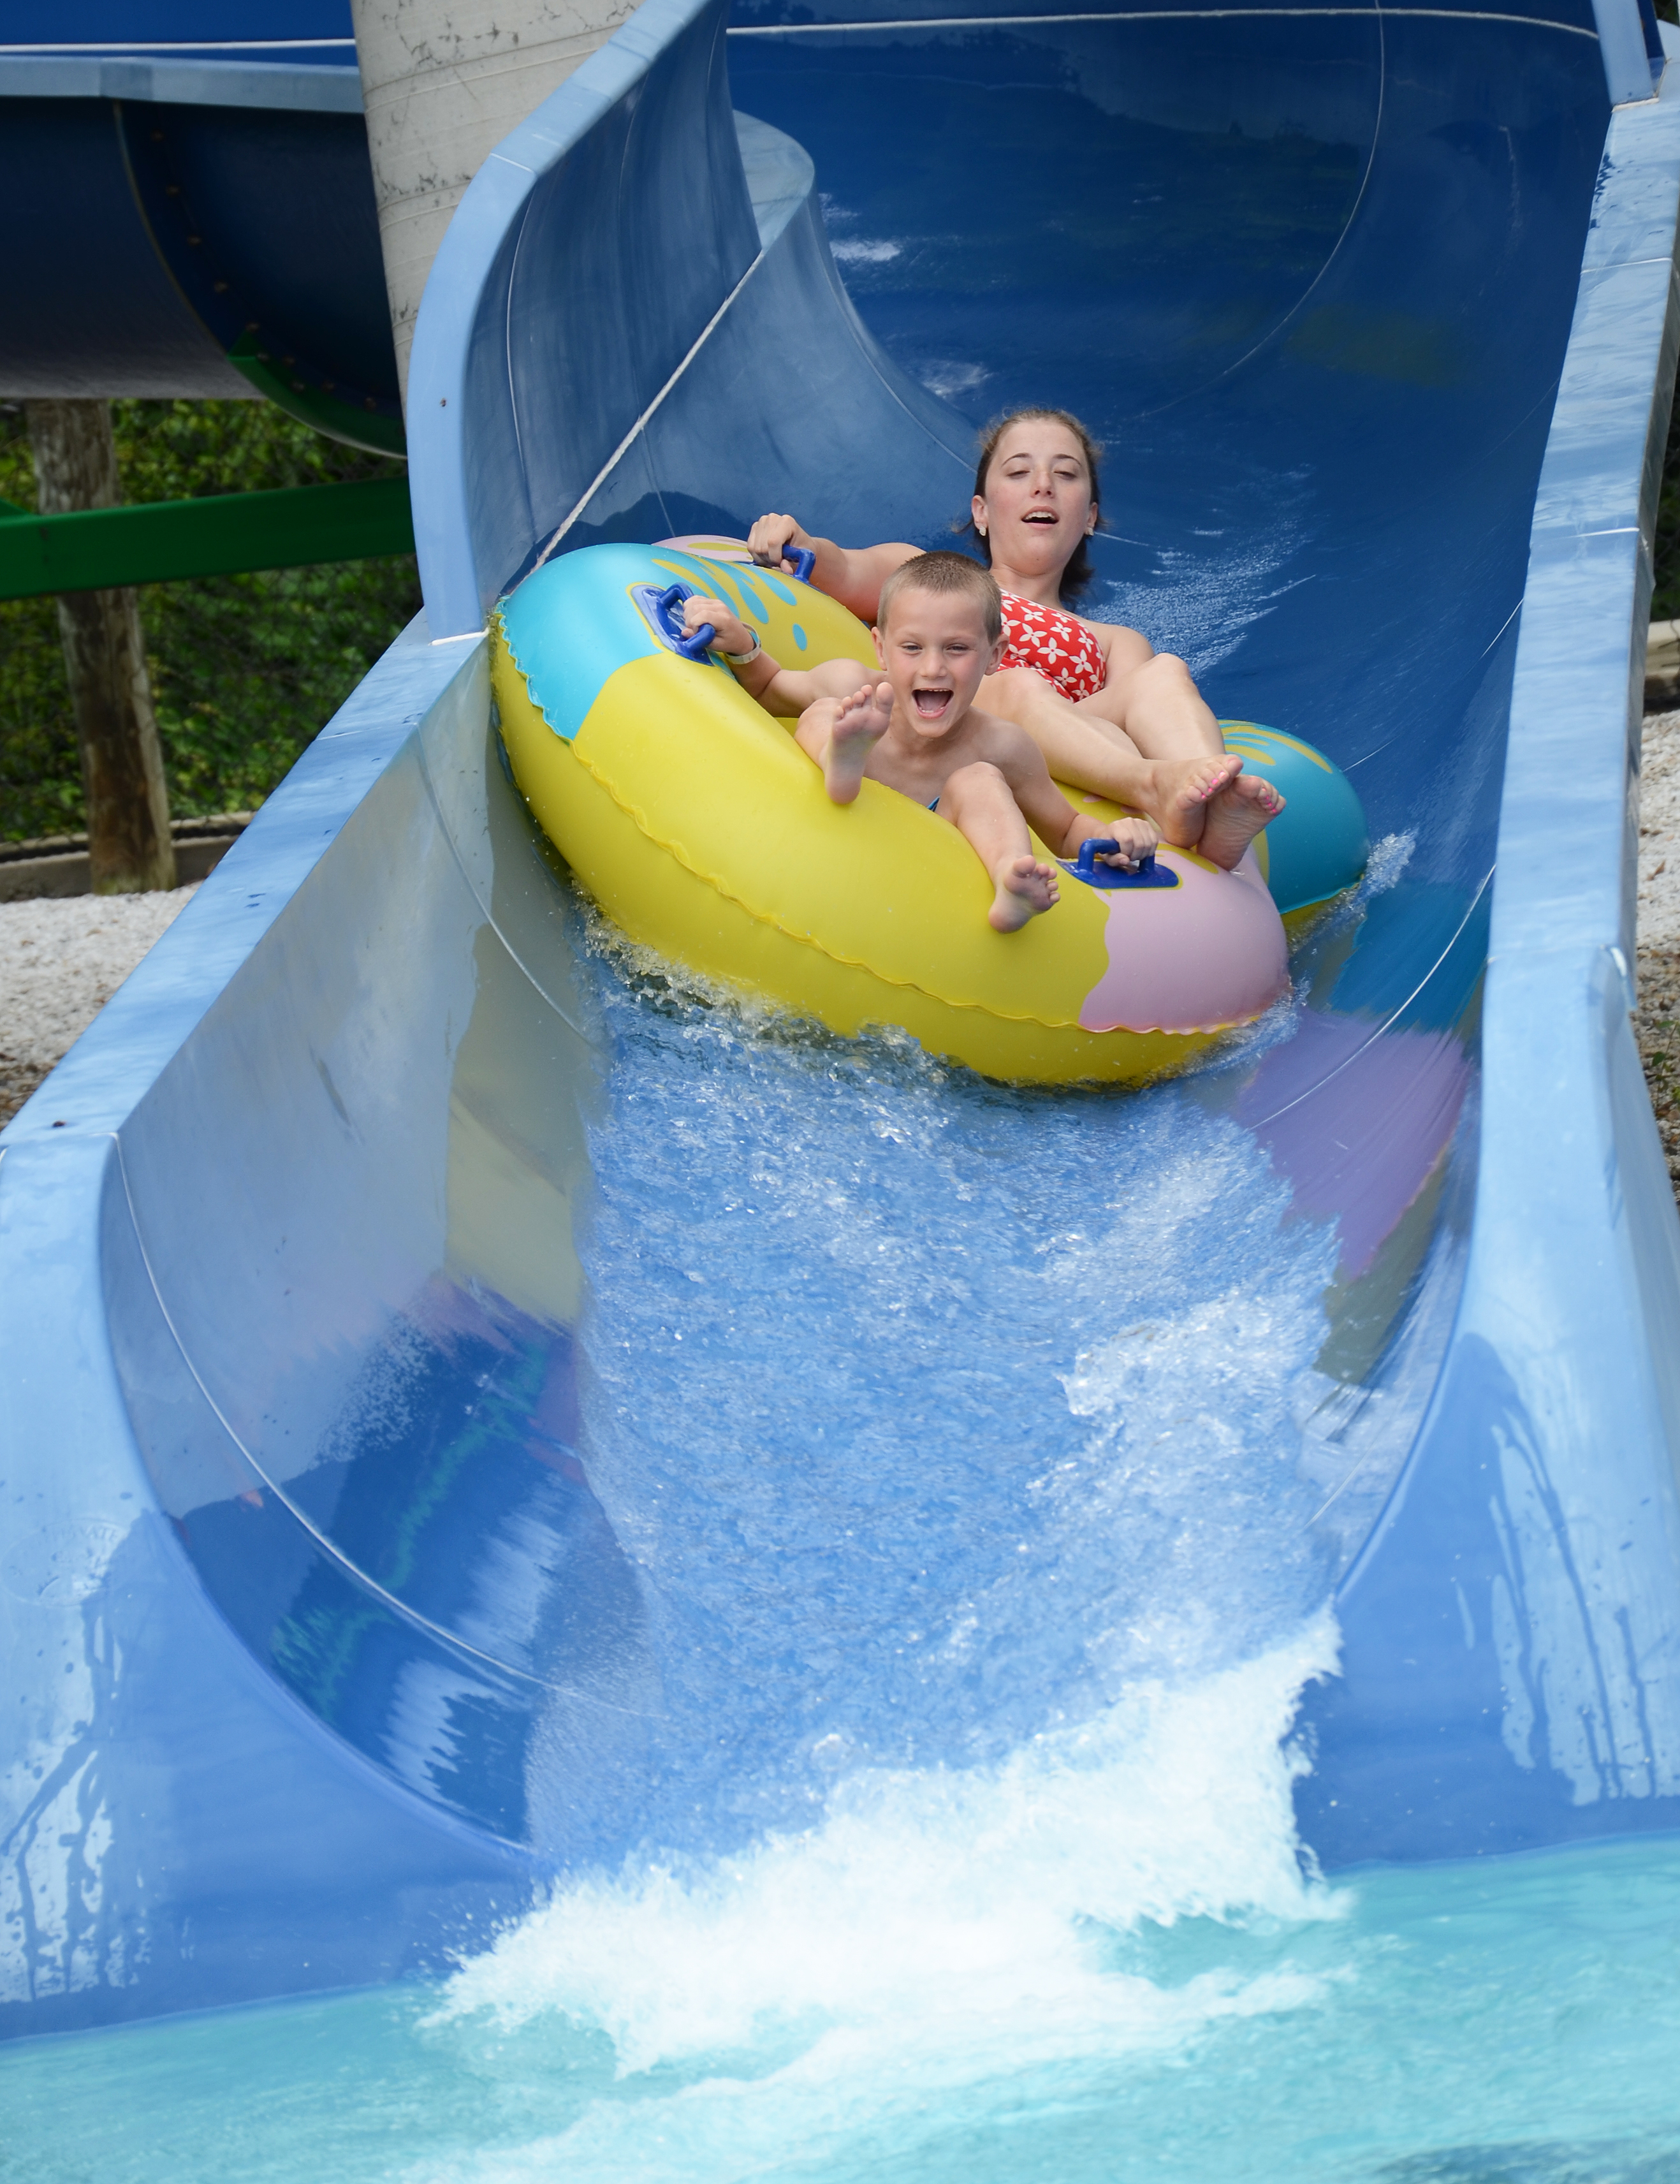 Campers screamed with excitement as they neared the bottom of the slide. out! We're almost to the bottom of the slide!